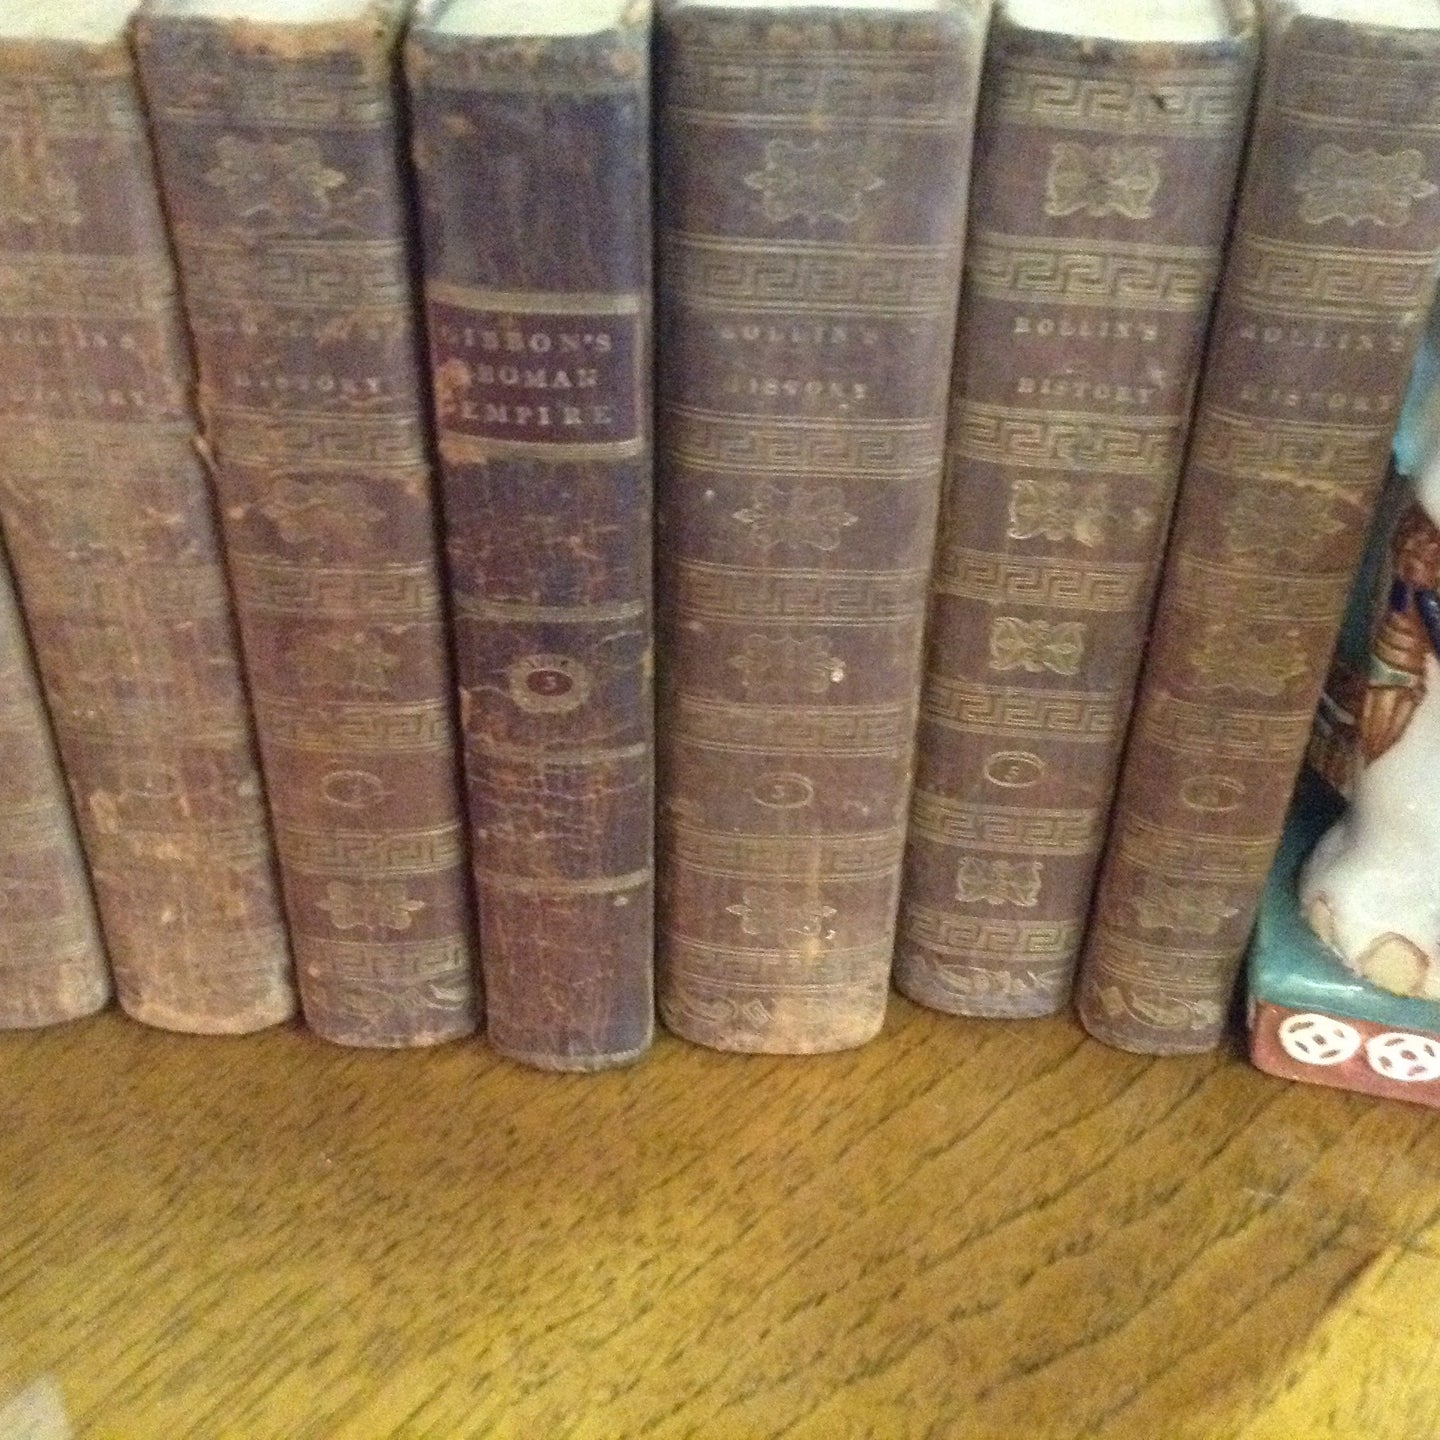 Set of 8 volumes of Rollin Leather books - The Sweetwood Collection